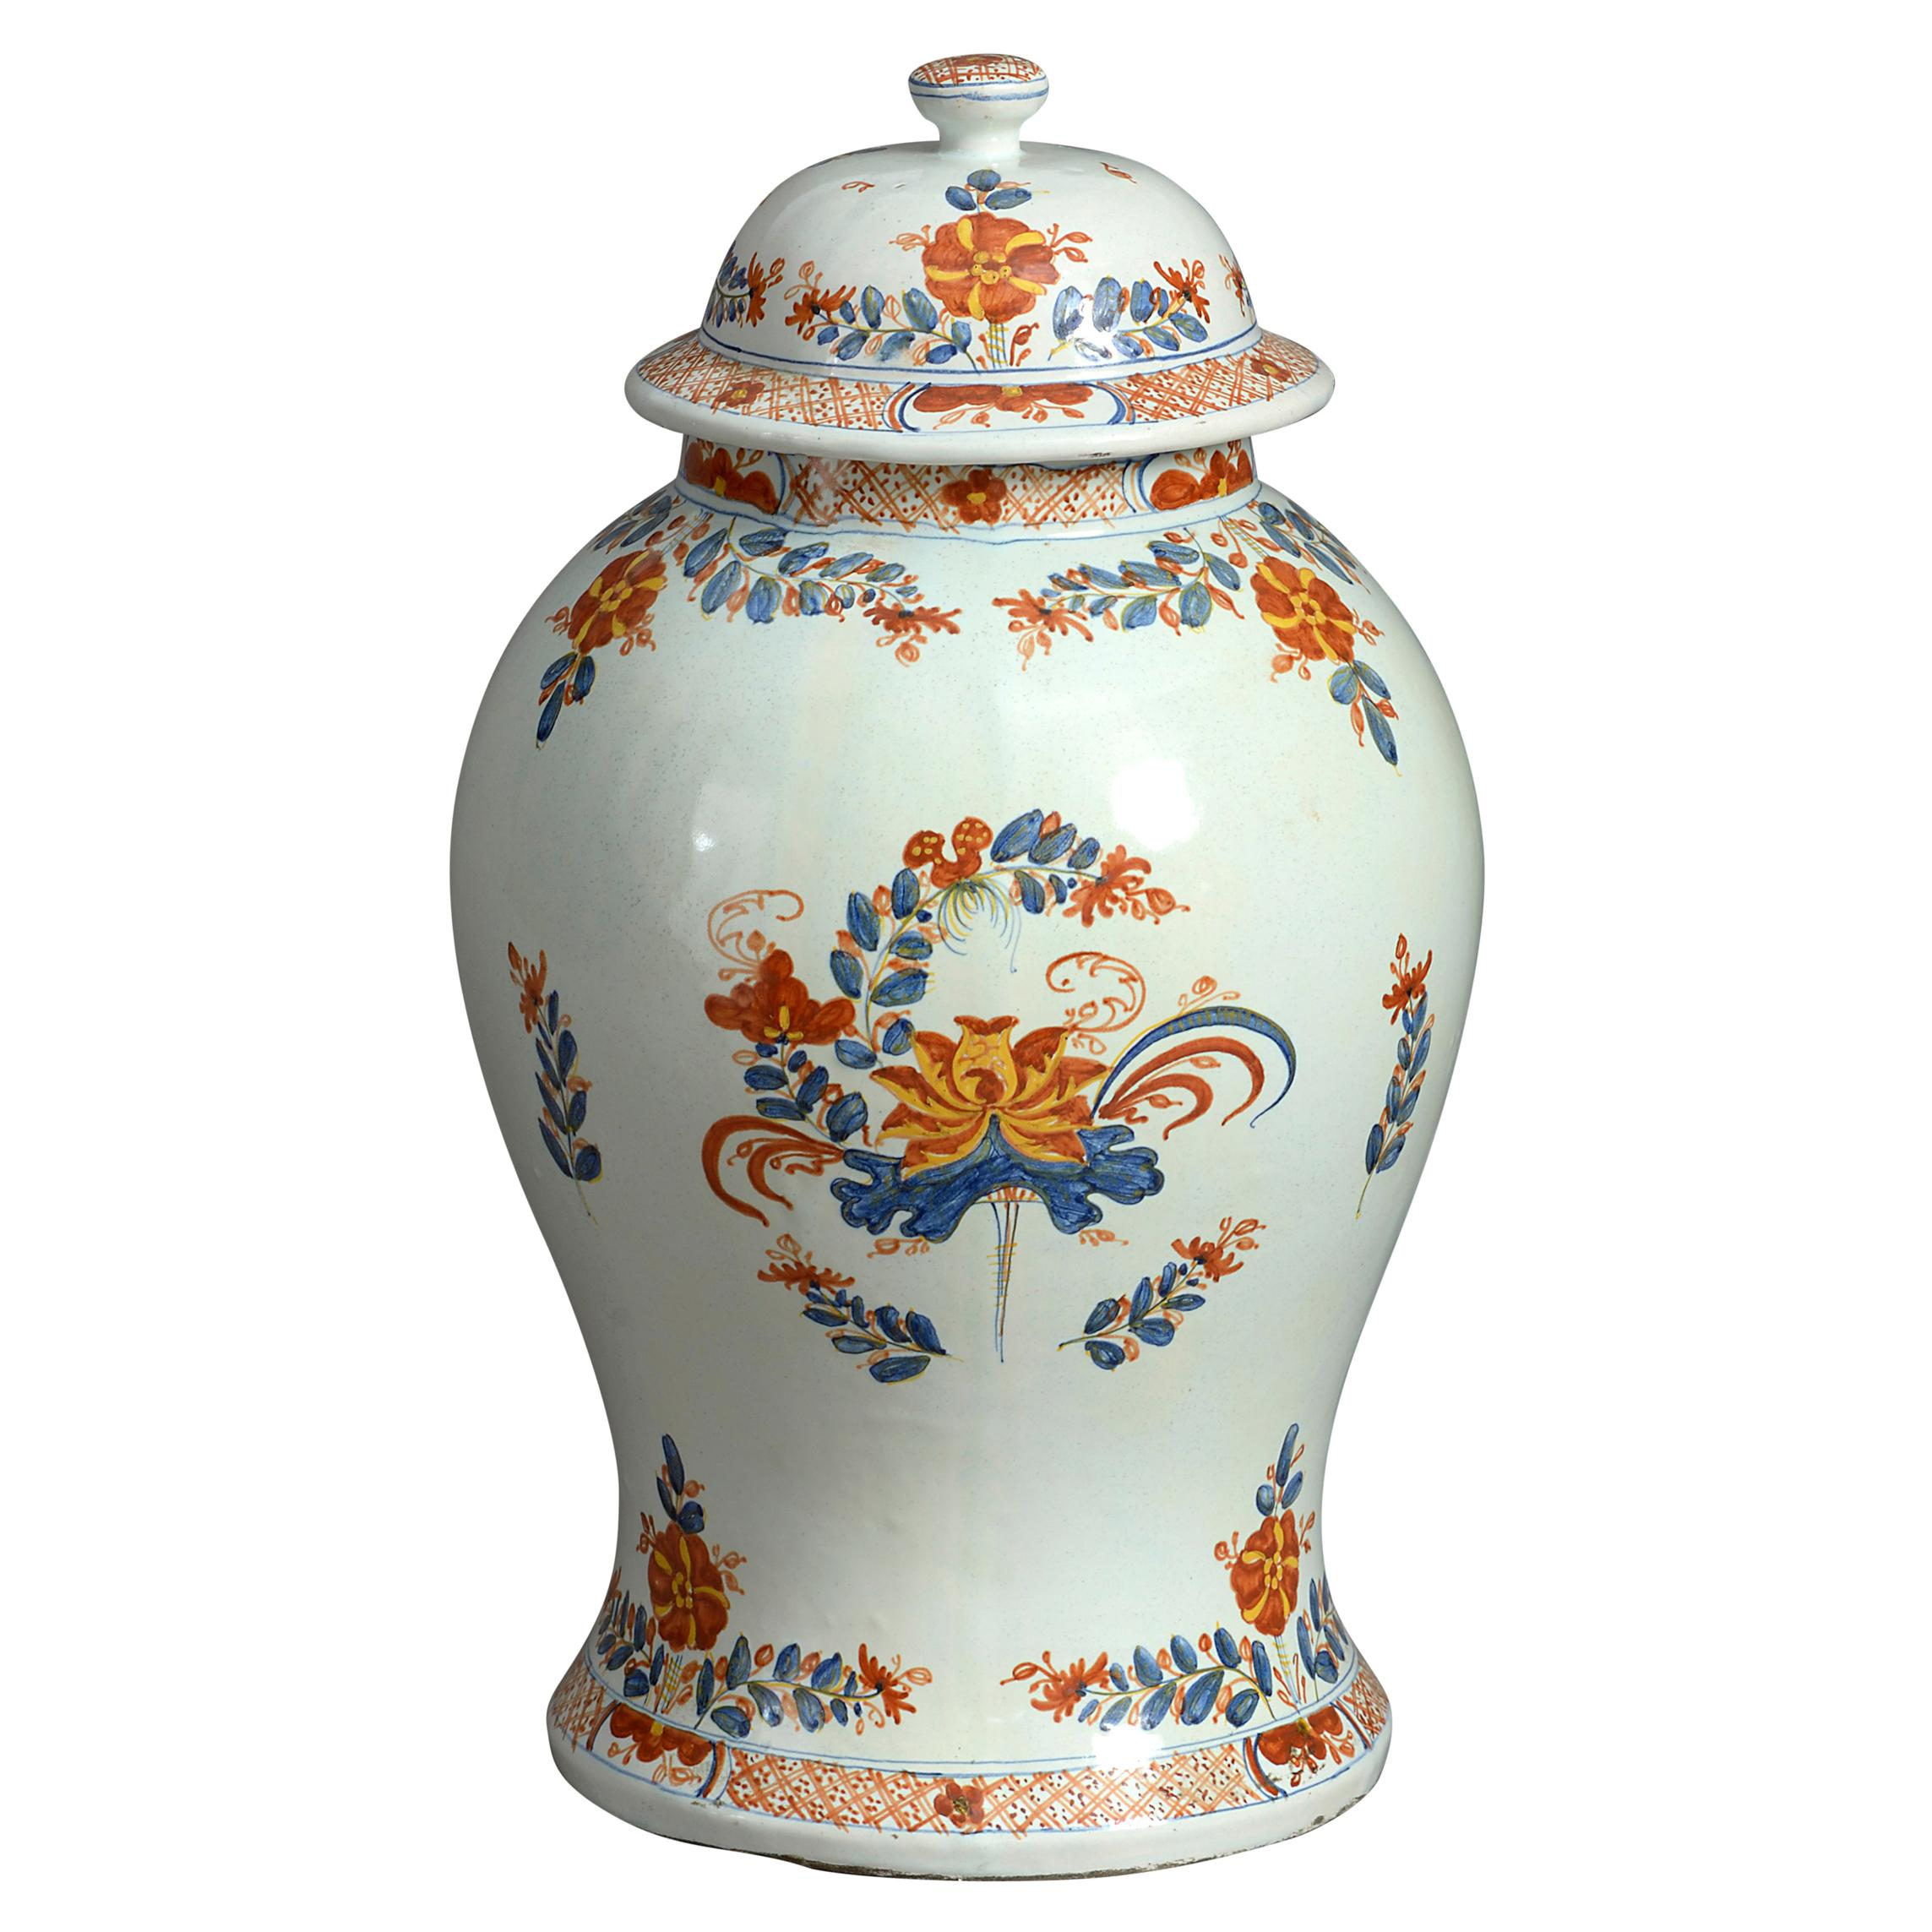 Early 20th Century Maiolica Jar and Cover